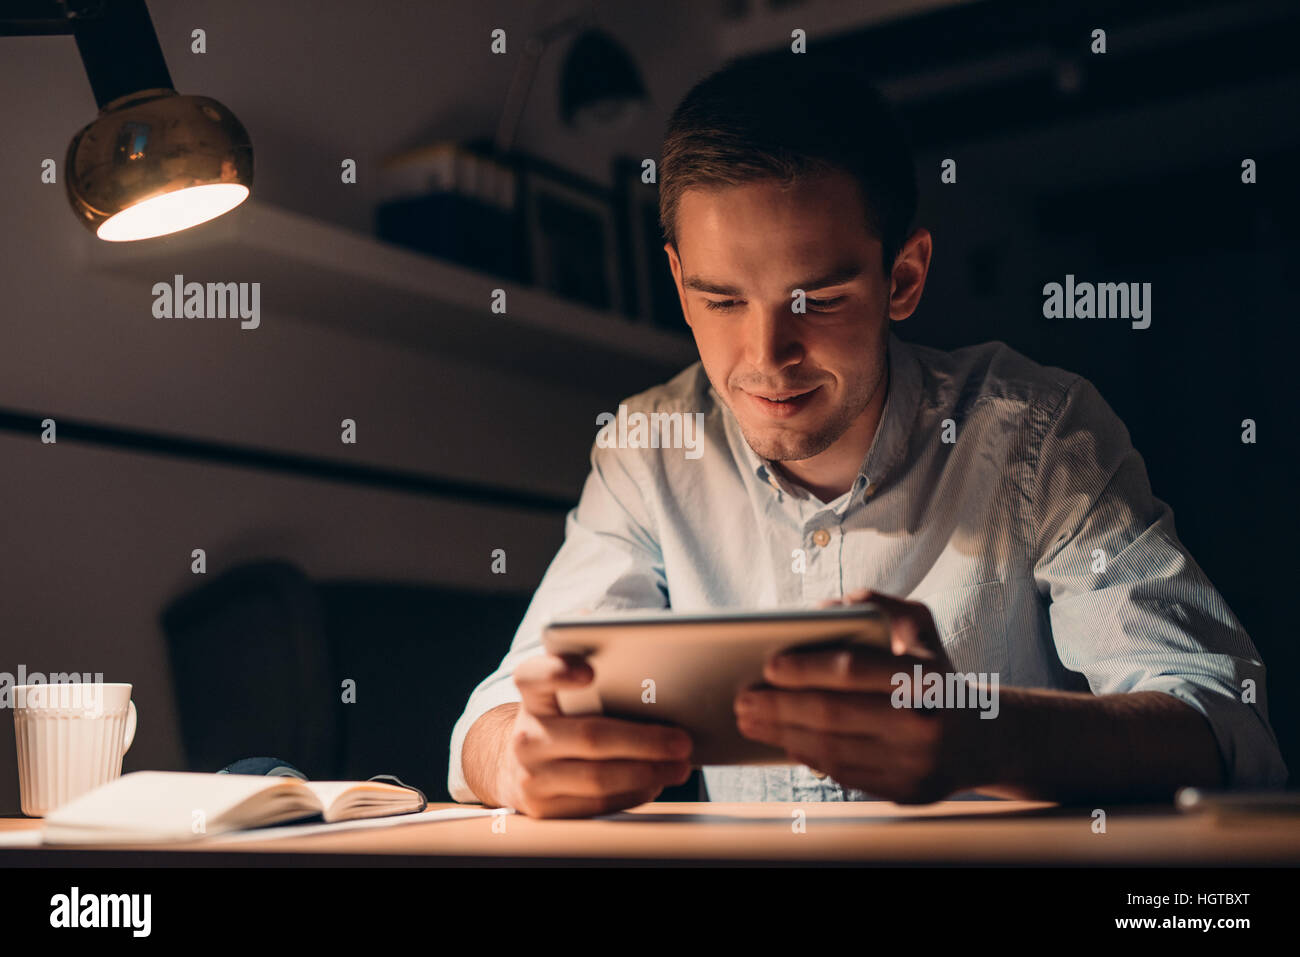 Young Woman using a tablet tard dans la nuit Photo Stock